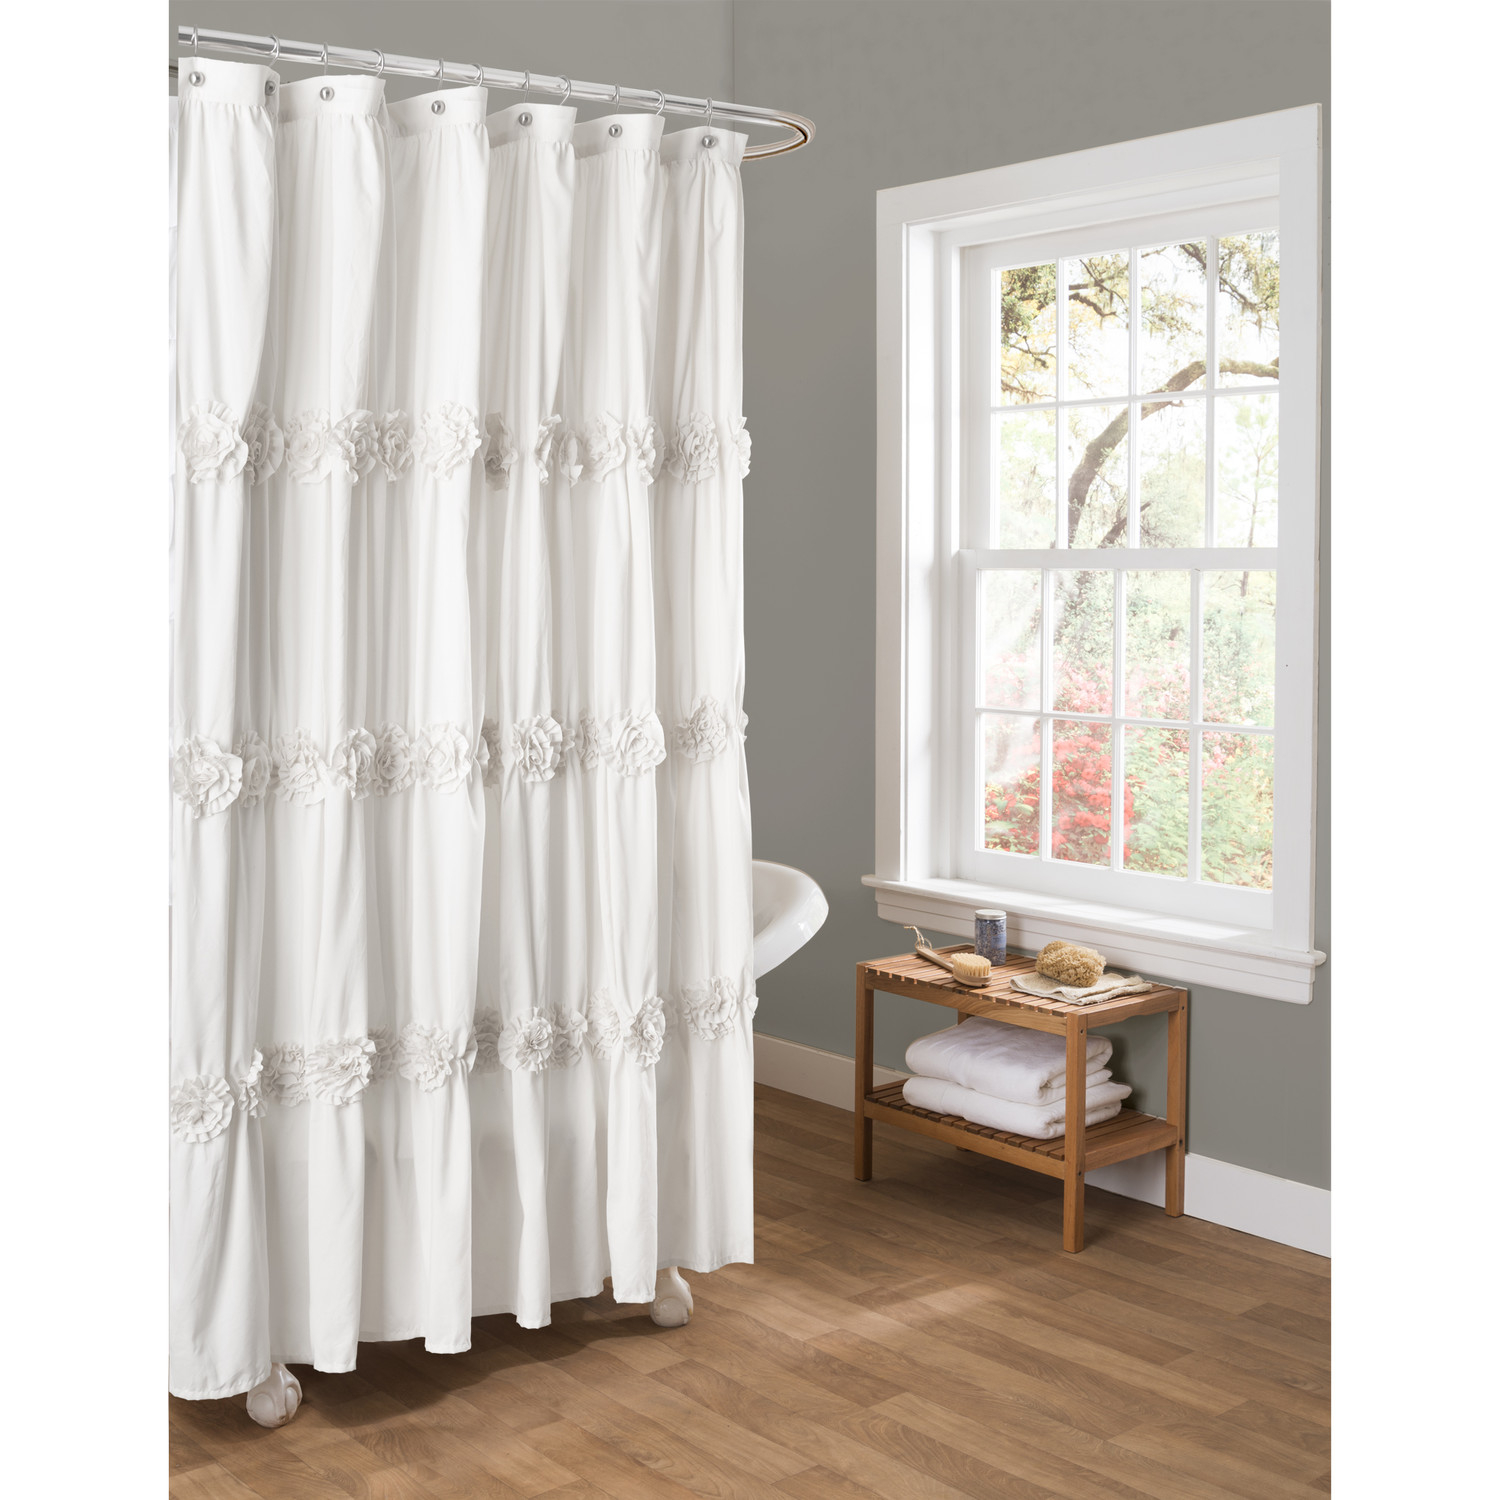 Bathroom White Daltile Wall With Curved Shower Curtain Rod And throughout measurements 1500 X 1500